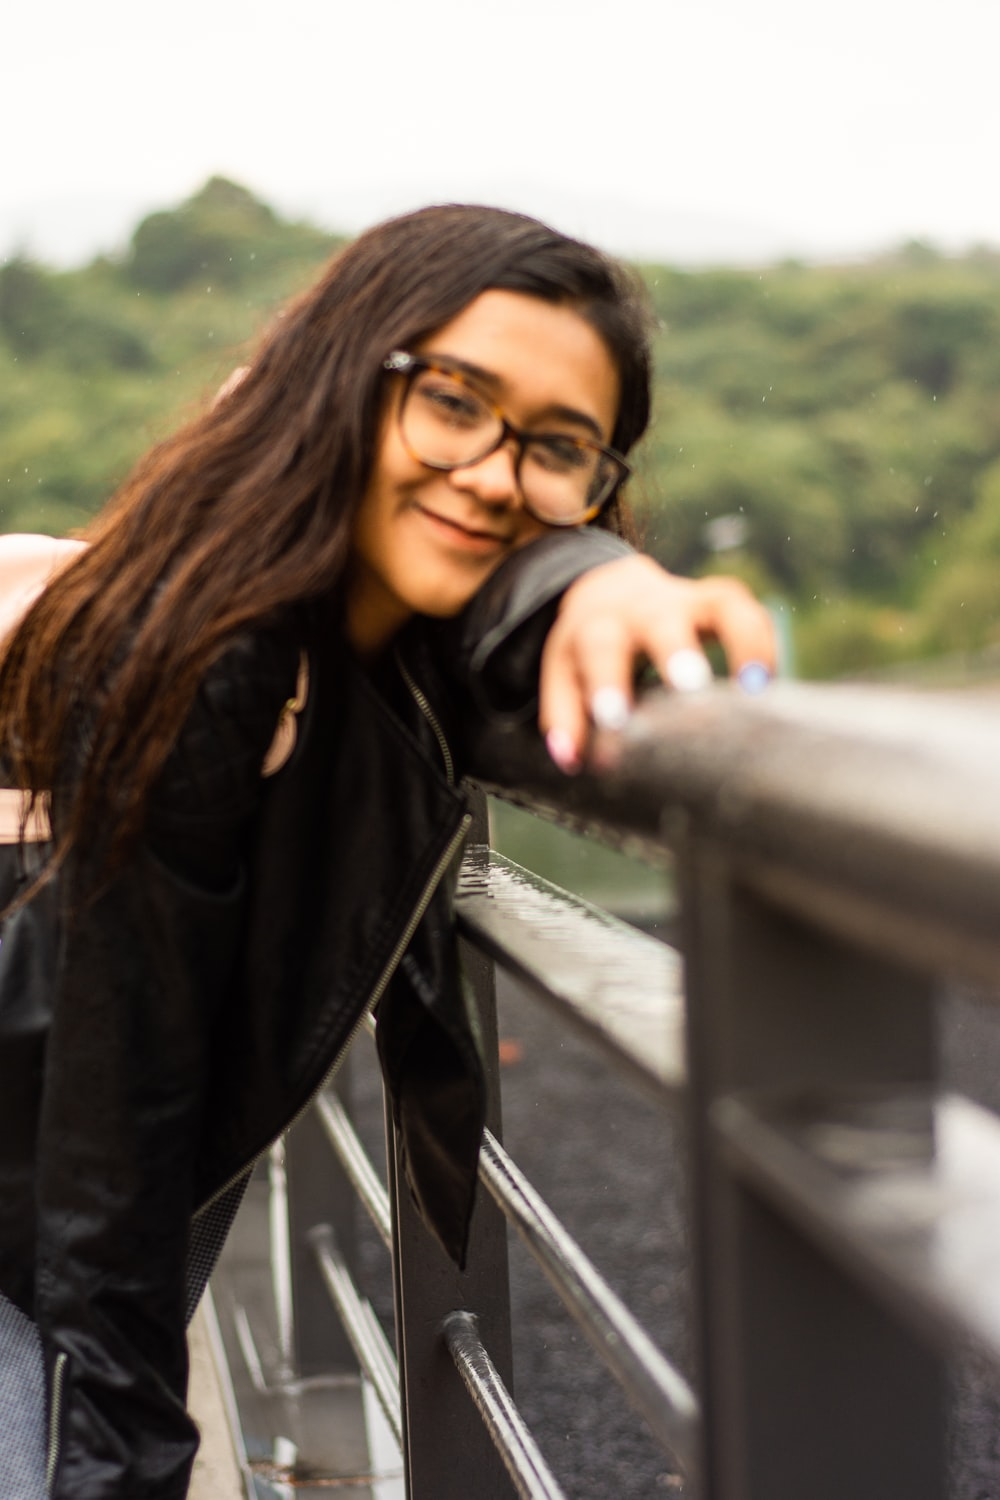 woman wearing jacket and eyeglasses leaning on post smiling